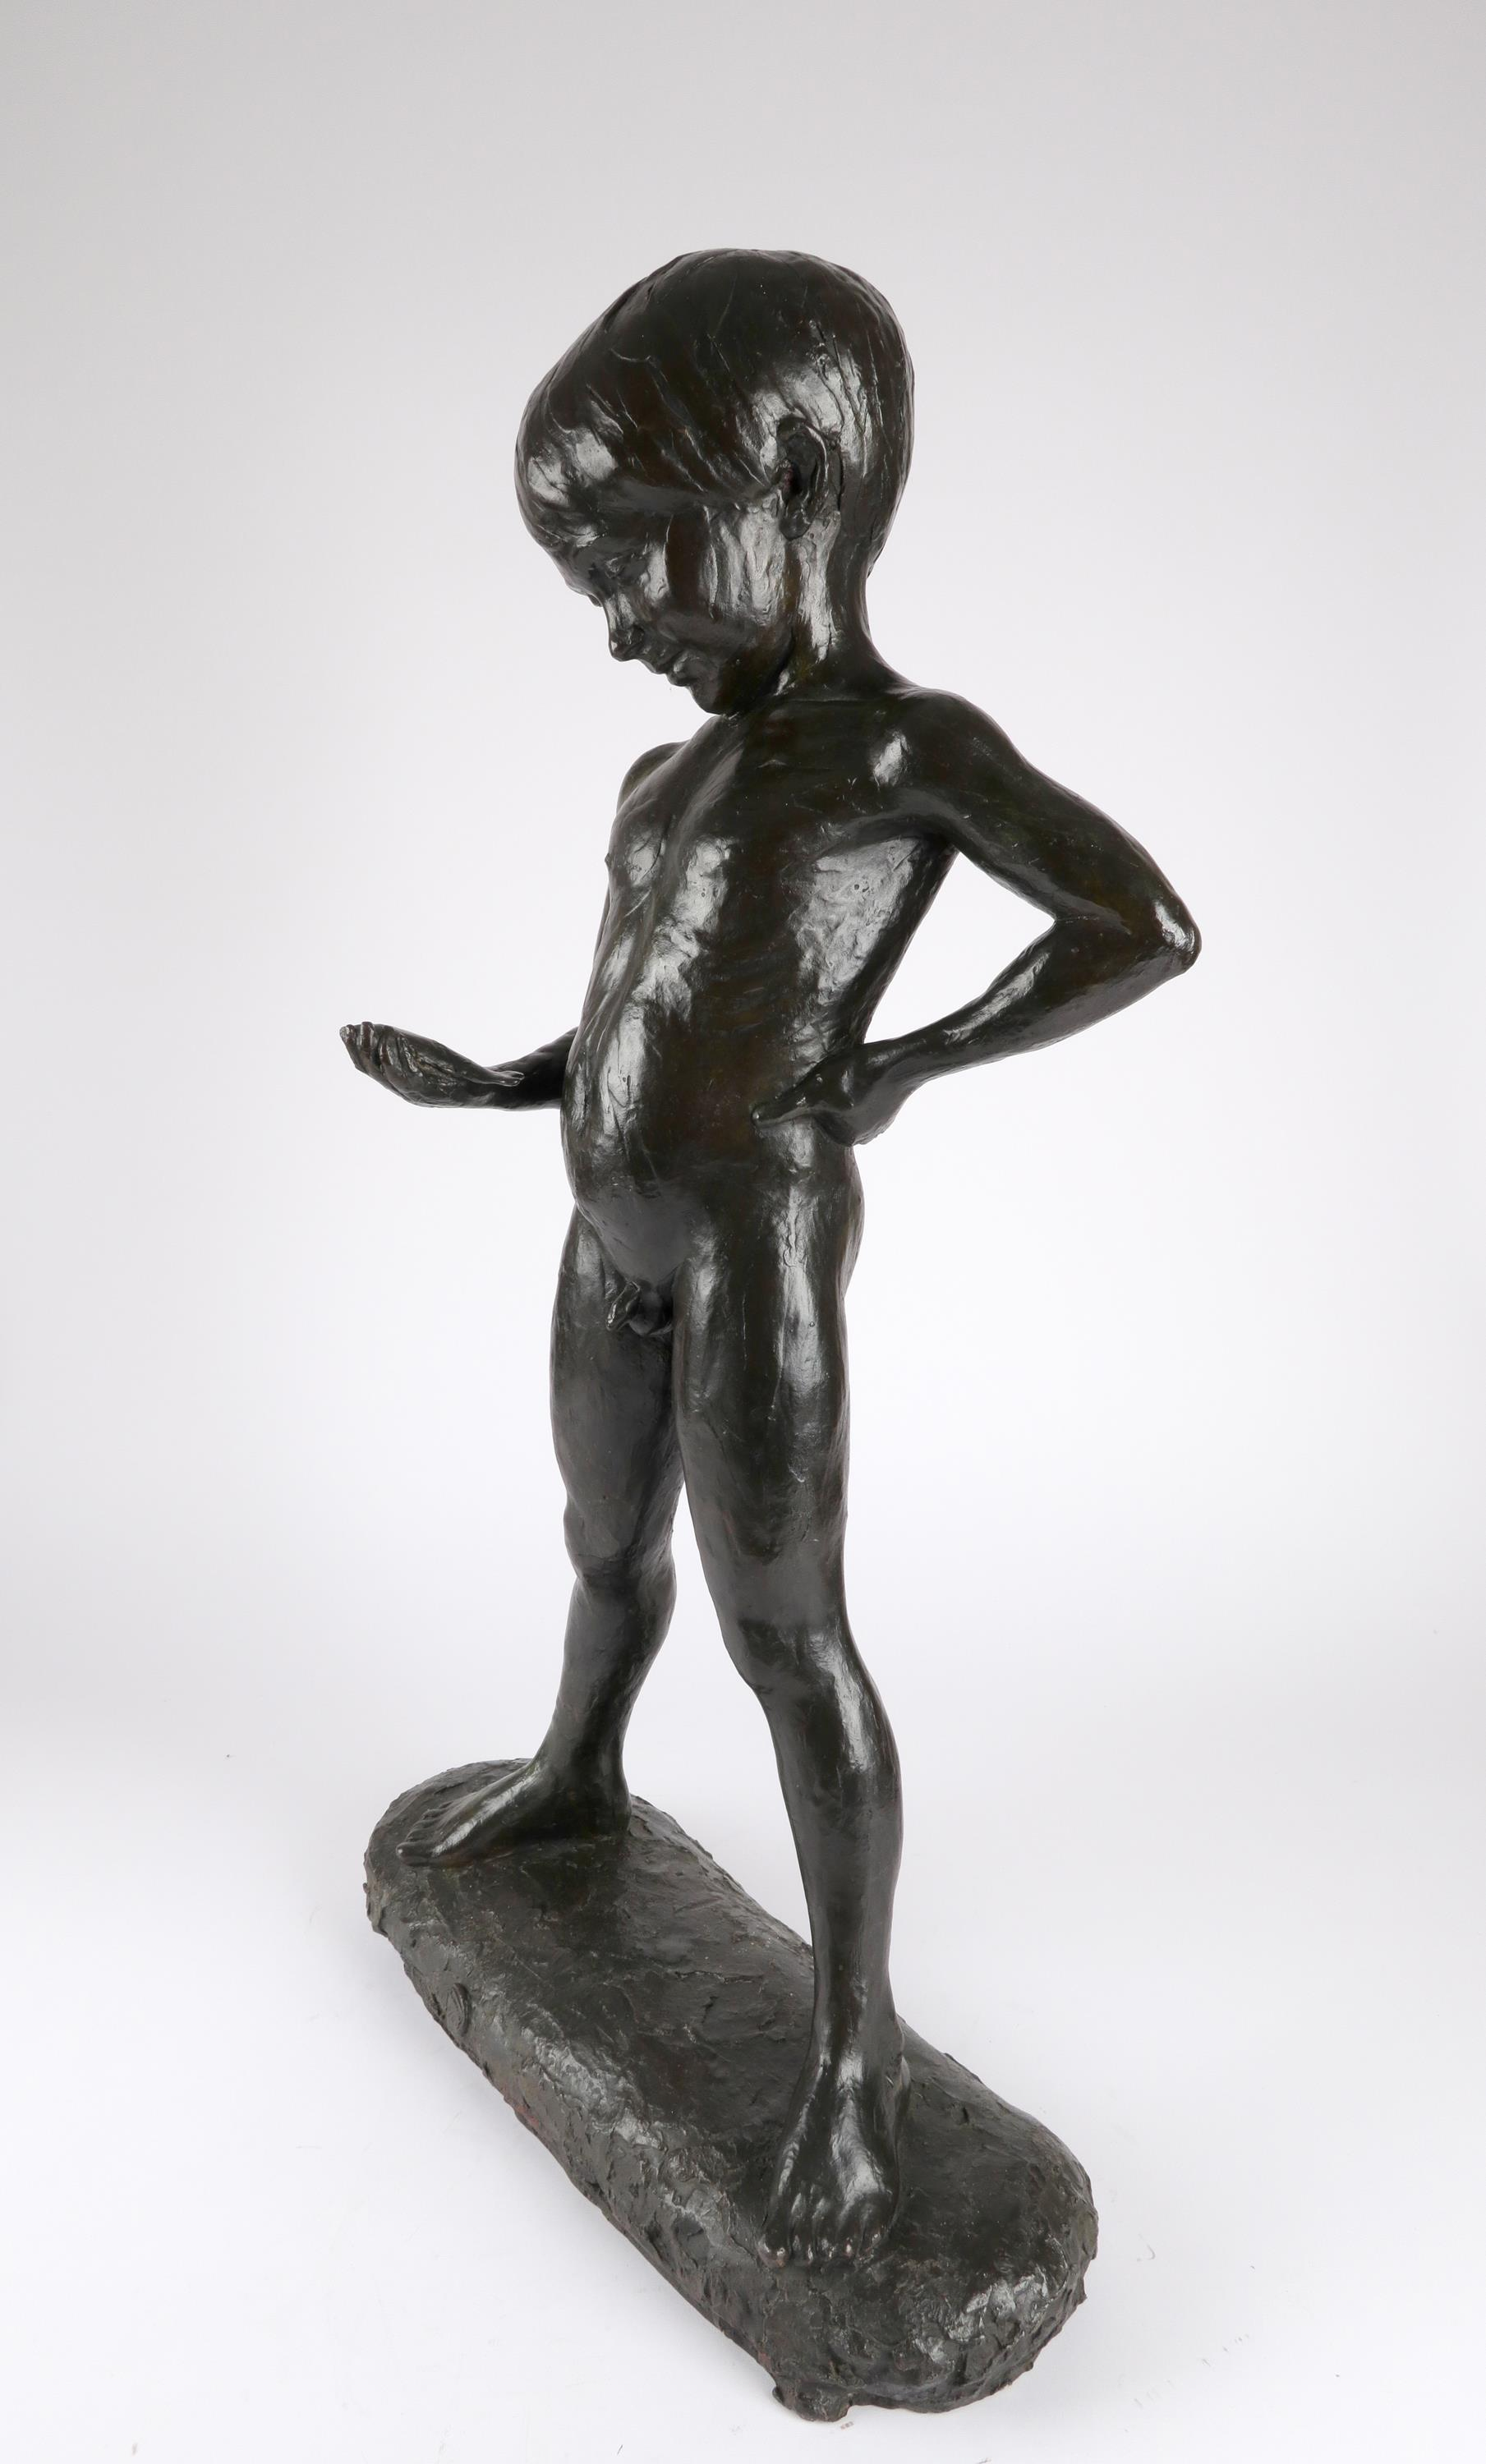 ‡Enzo Plazzotta (Italian 1921-1991) The fisherboy Stamped with signature and number Plazzotta/3/9, - Image 4 of 4